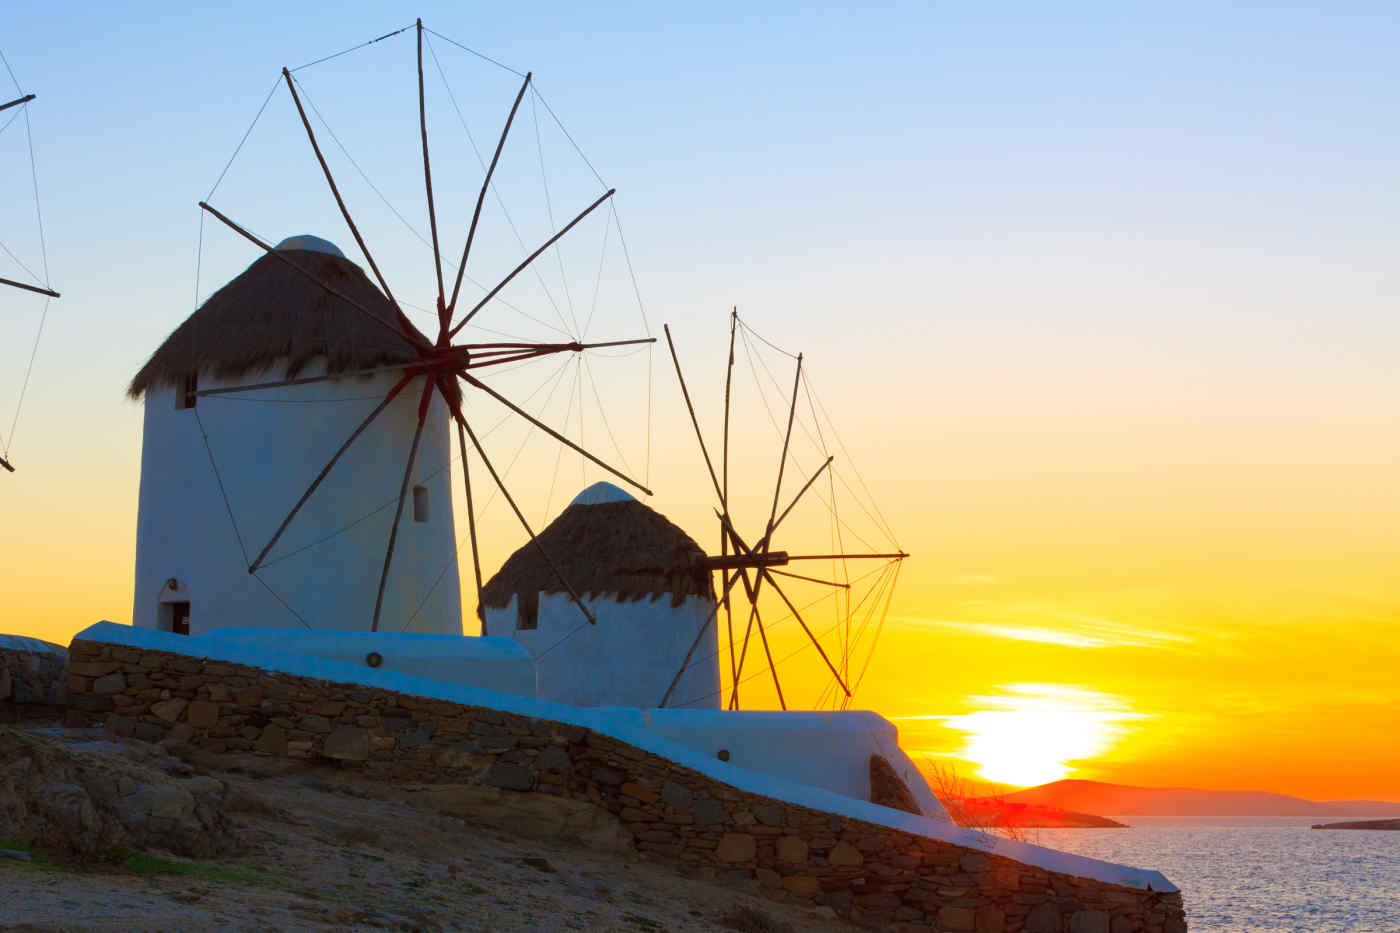 Kato Myli Windmills, Mykonos, Greece